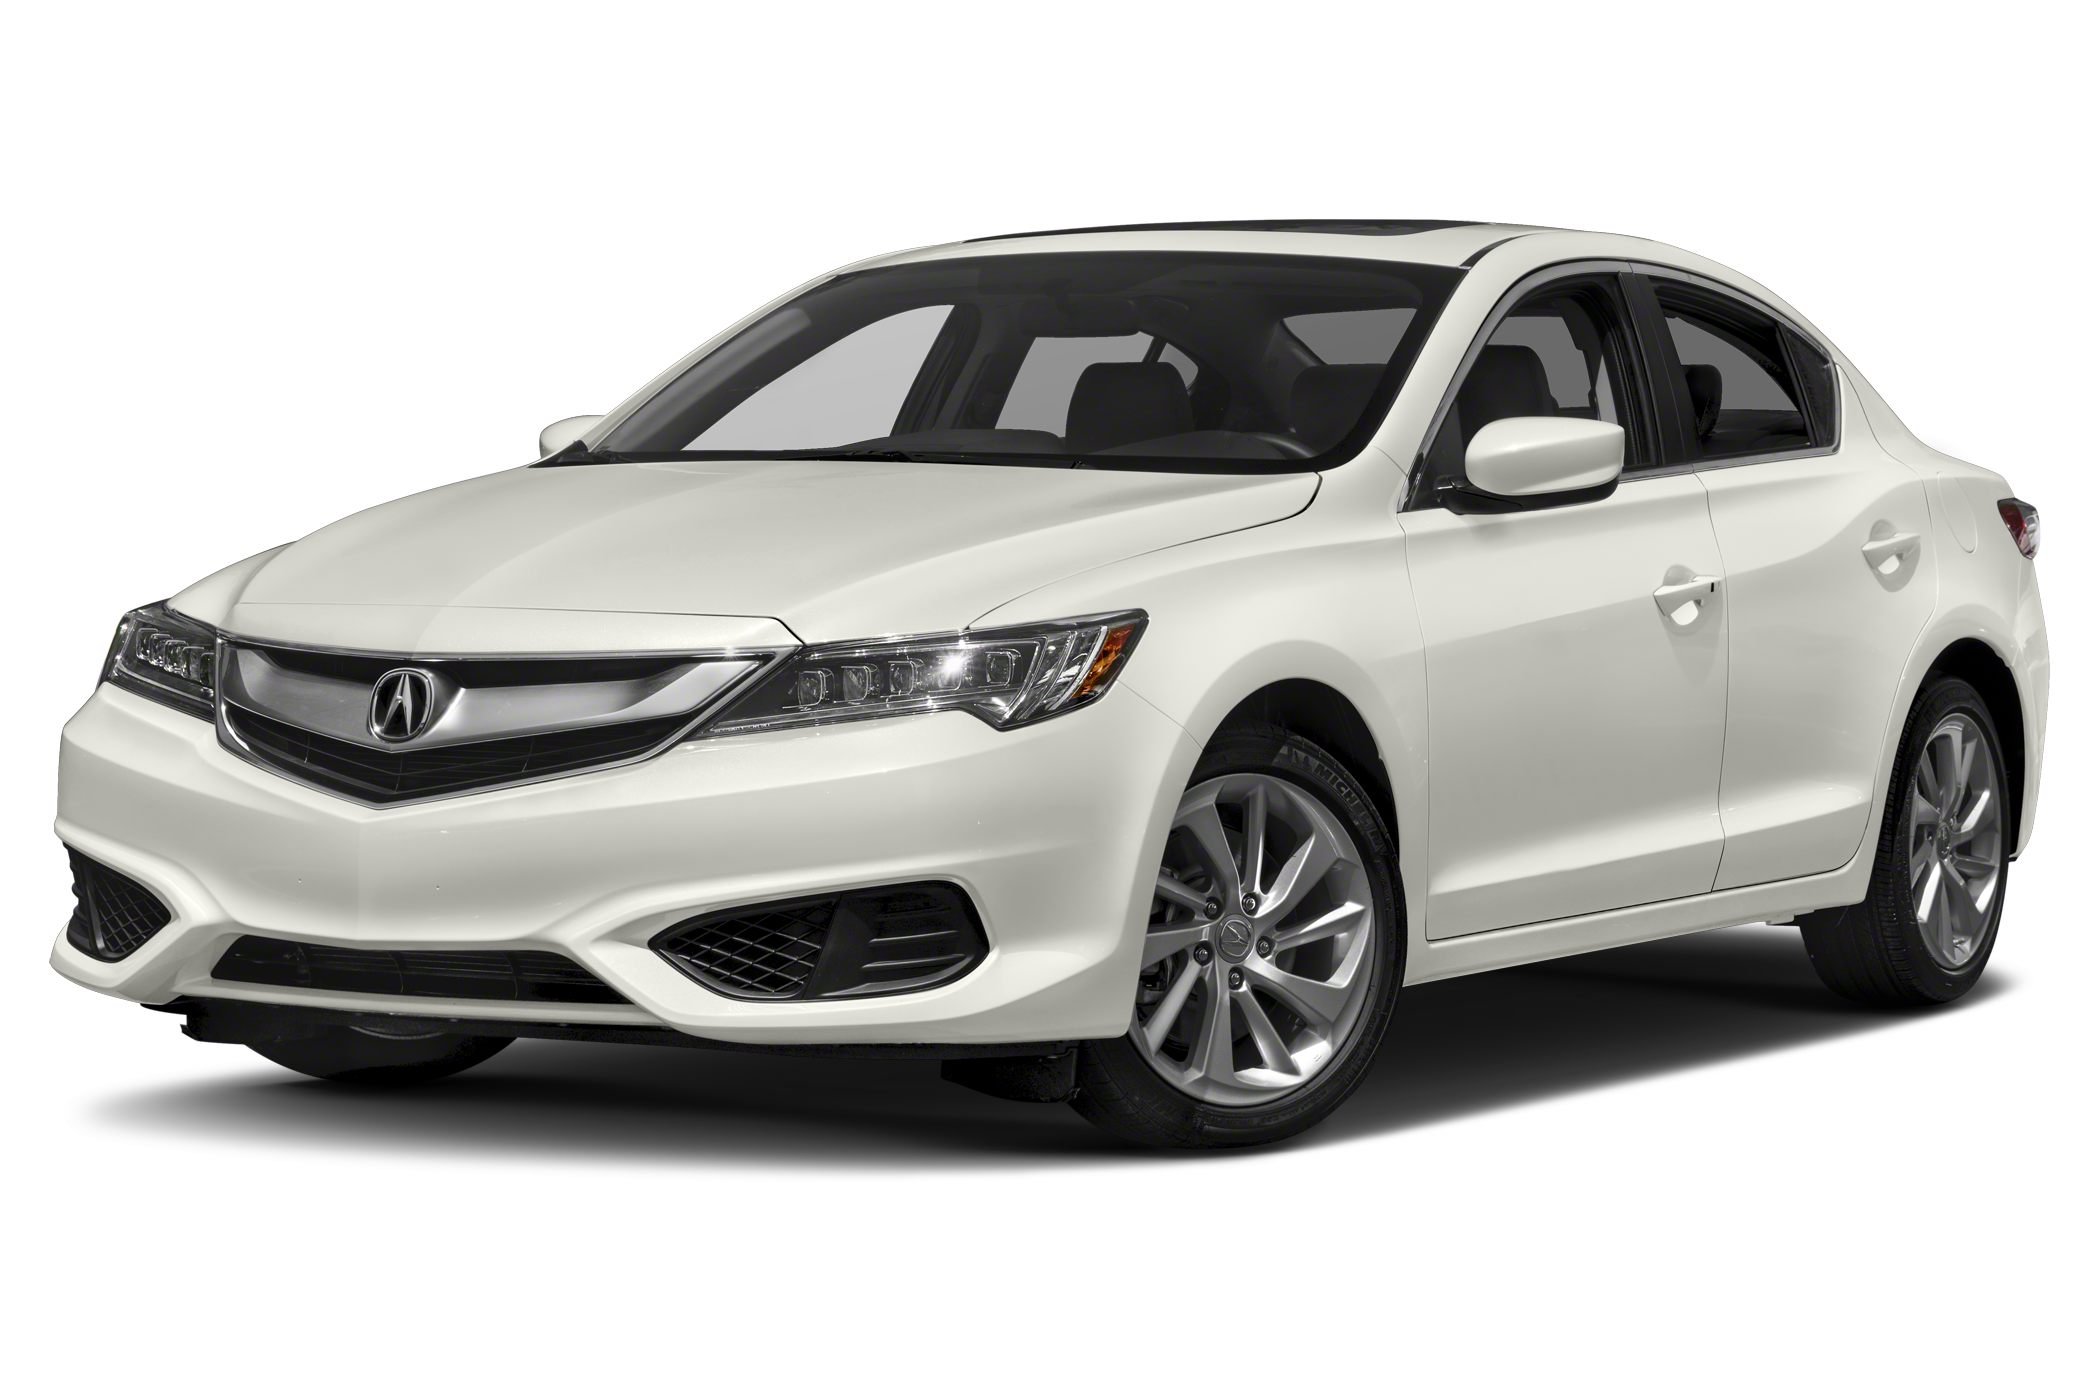 2015 Honda Accord For Sale >> 2016 Acura ILX: First Drive Photo Gallery - Autoblog